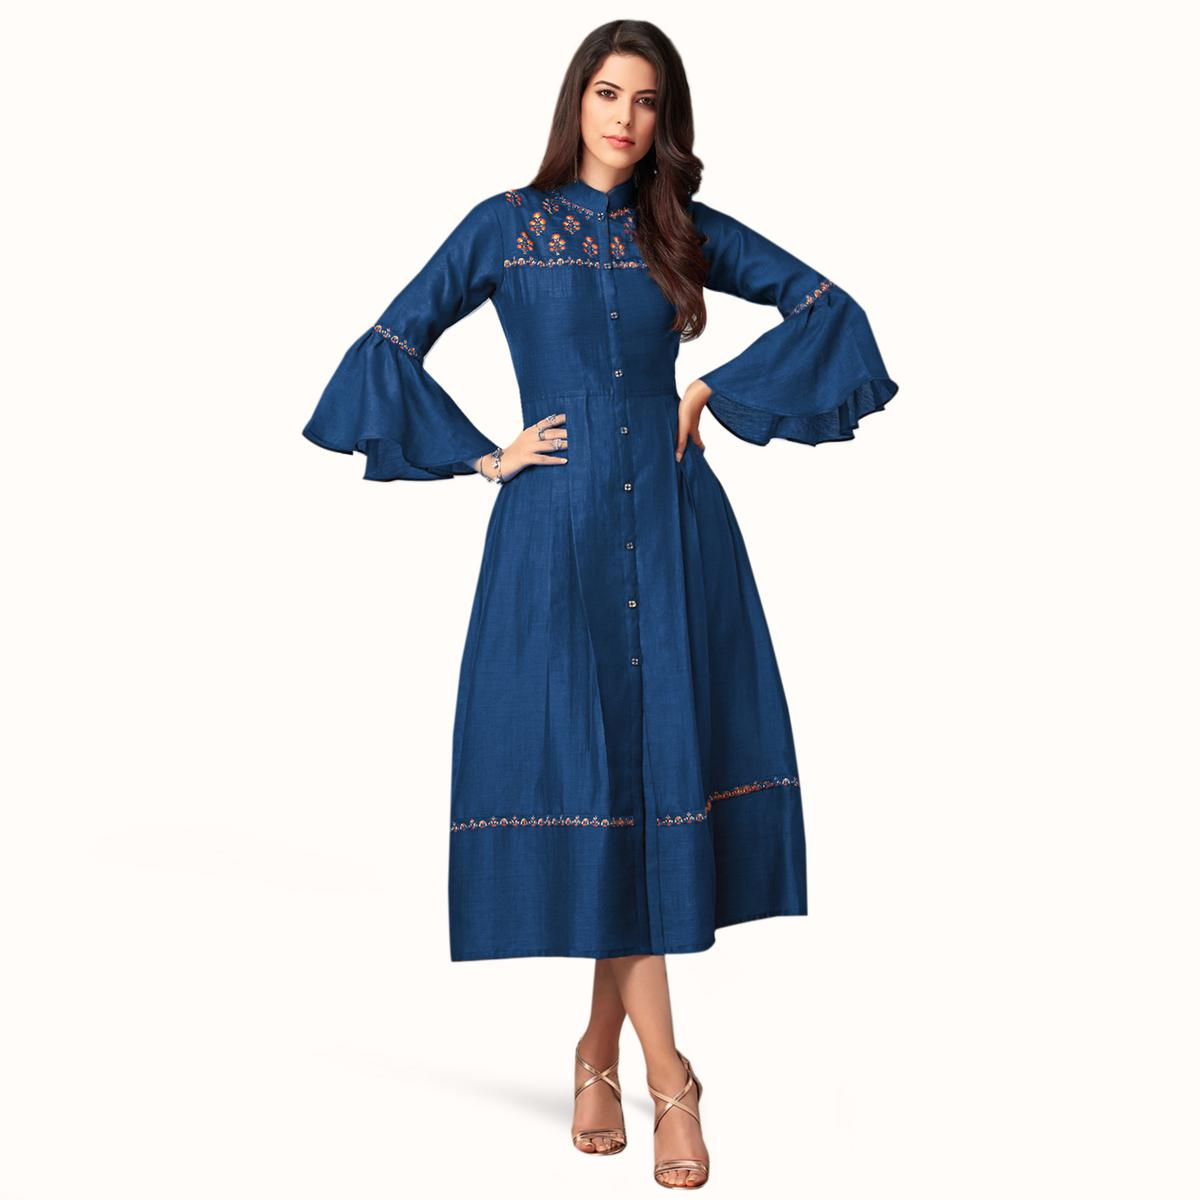 Marvellous Blue Colored Partywear Embroidered Bell Sleeves Cotton Kurti